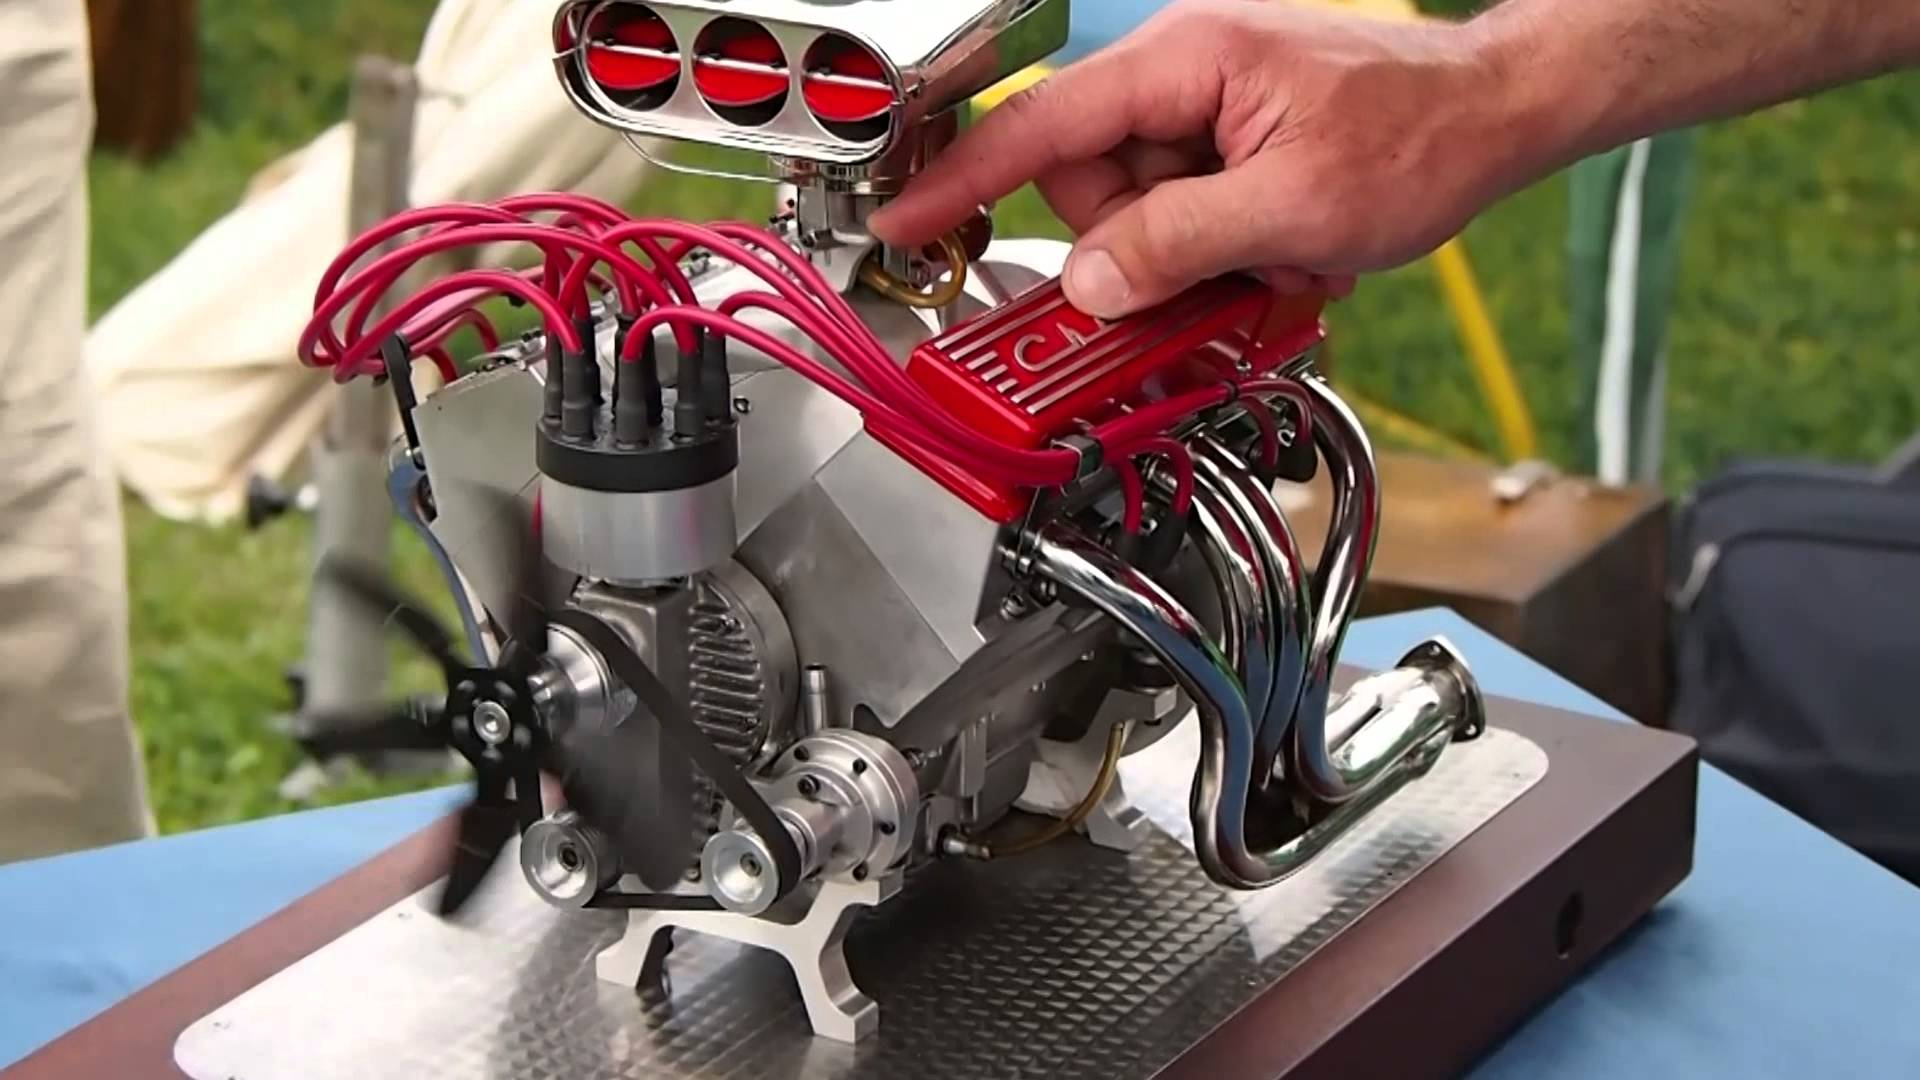 Mini CNC 4-axis and Miniature Chevrolet V8